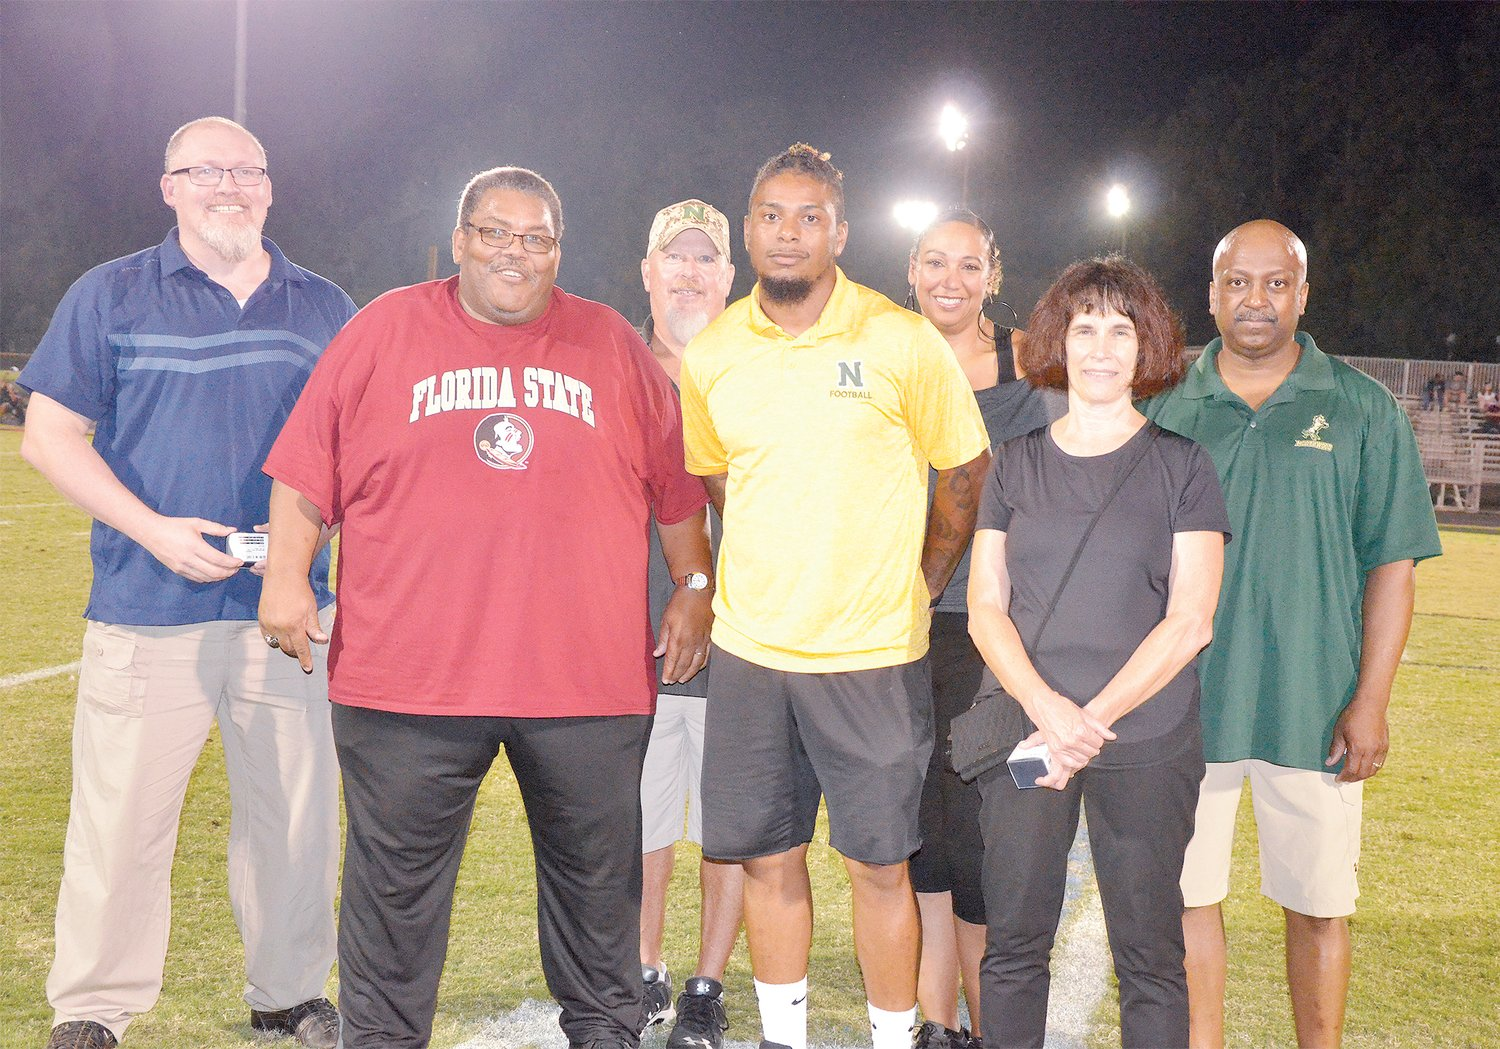 New inductees into the Northwood High Hall of Fame made their appearance in last Friday's game in Pittsboro. They are, from left, Will Shambley, Ronald Brooks, Bill Hall, Tobias Palmmer, Latanya Davis, Kathryn Dispennette and Craig Adams.